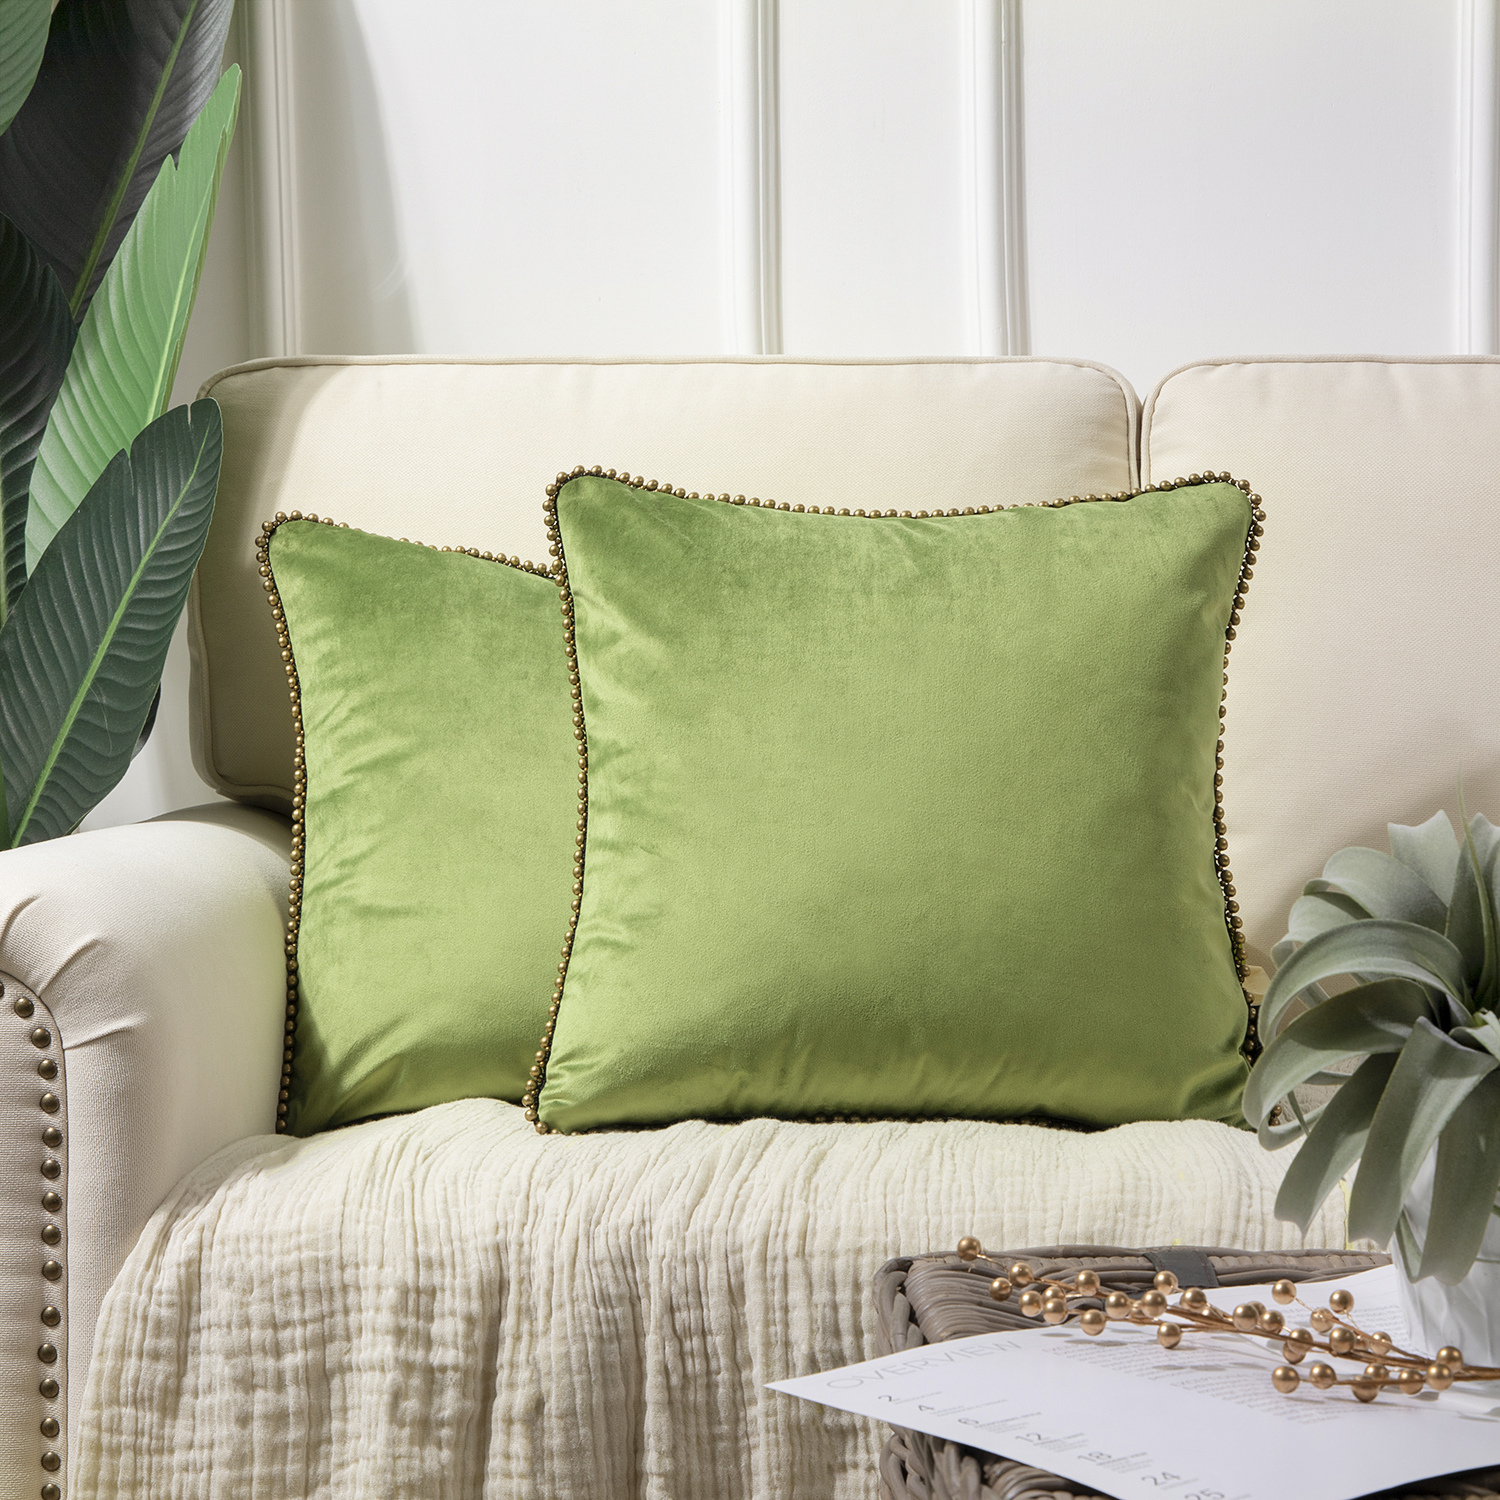 phantoscope particles trimmed soft velvet throw pillow 18 x 18 green with bronze particles 2 pack